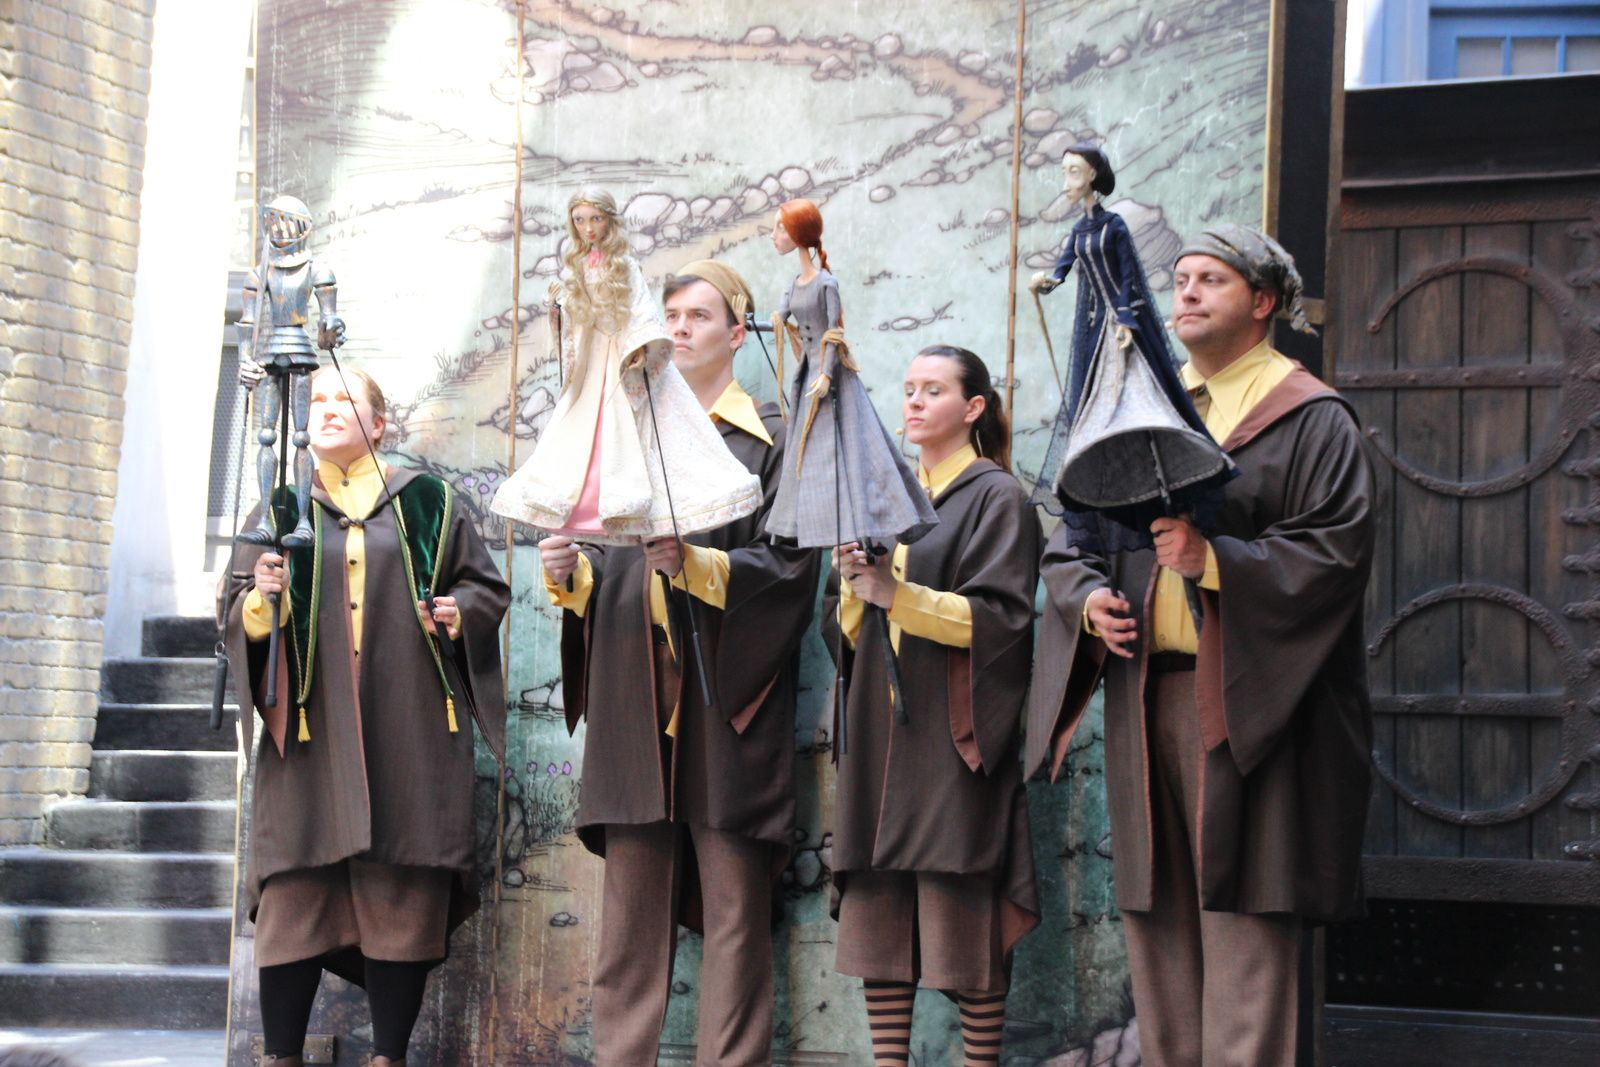 Spectacle : les contes de Beedle le Barde : The Wizarding World of Harry Potter